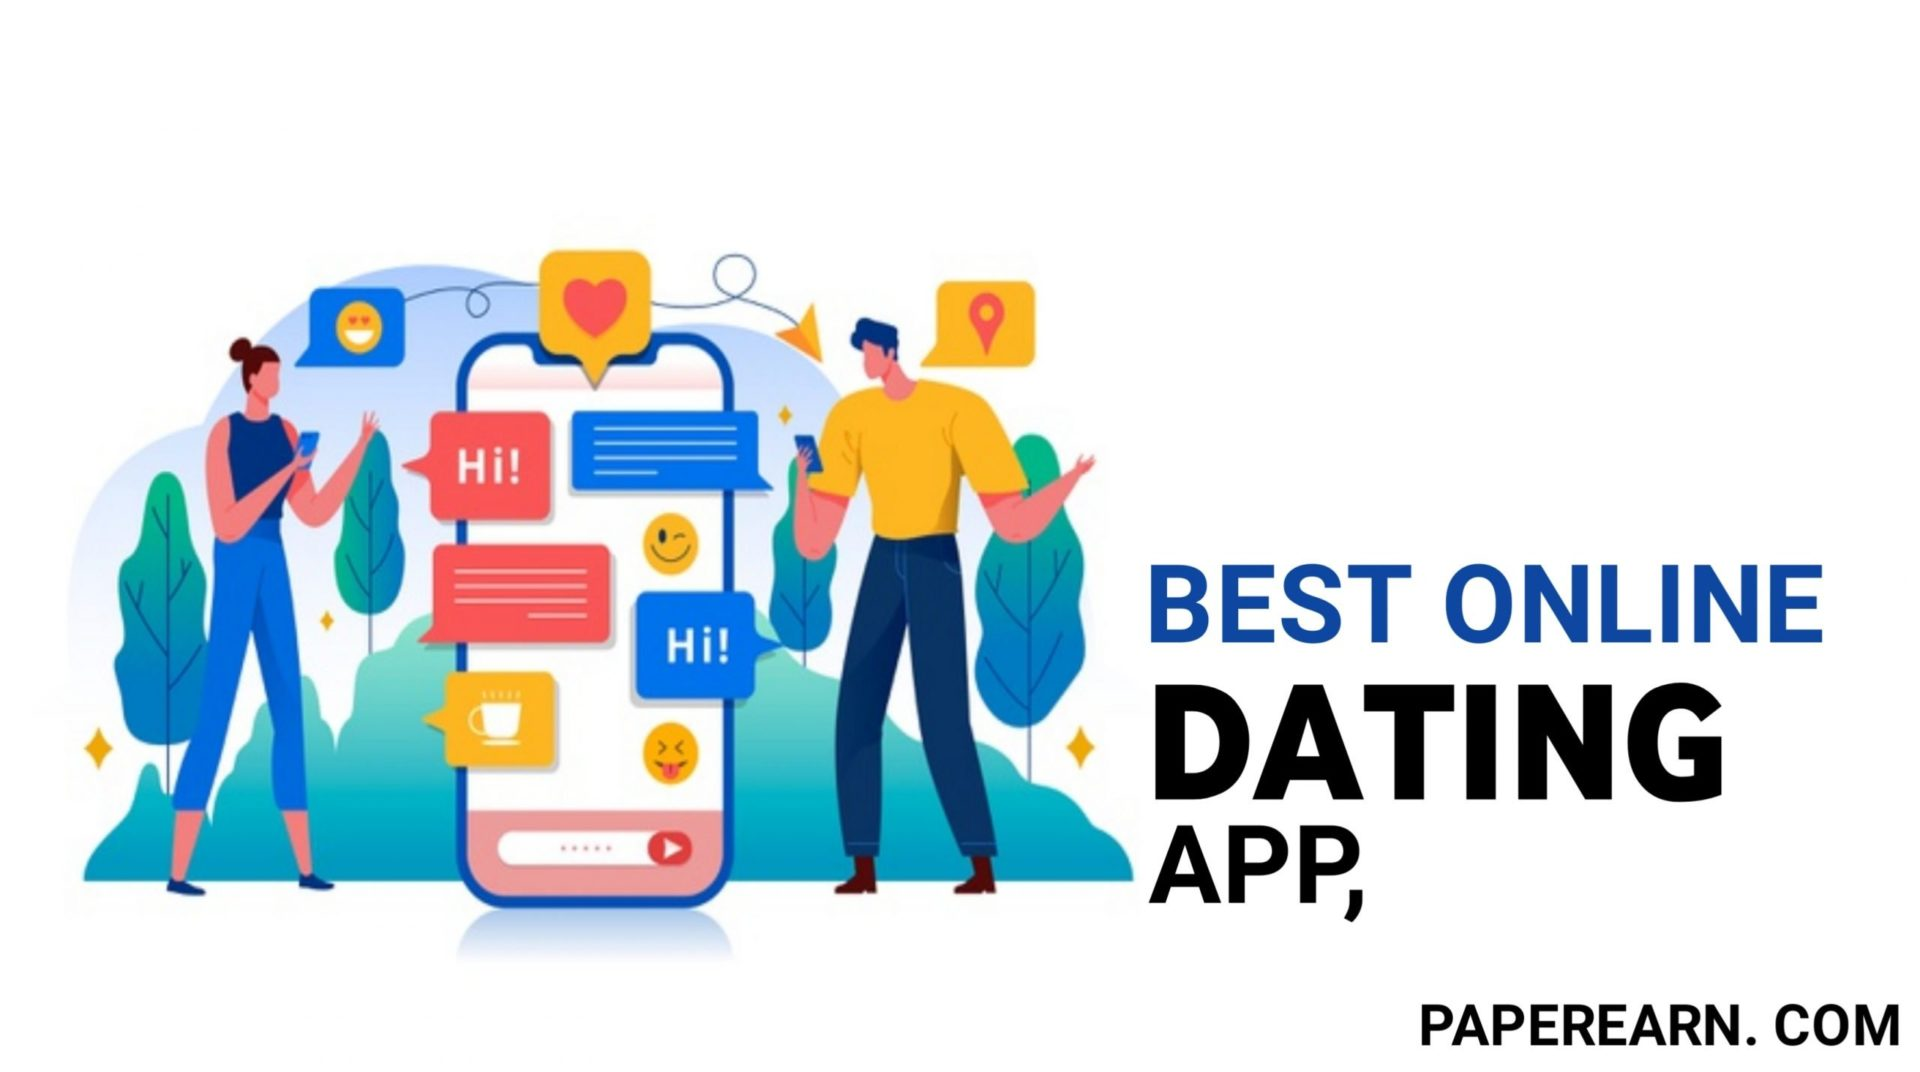 Best Online Dating App - paperearn.com